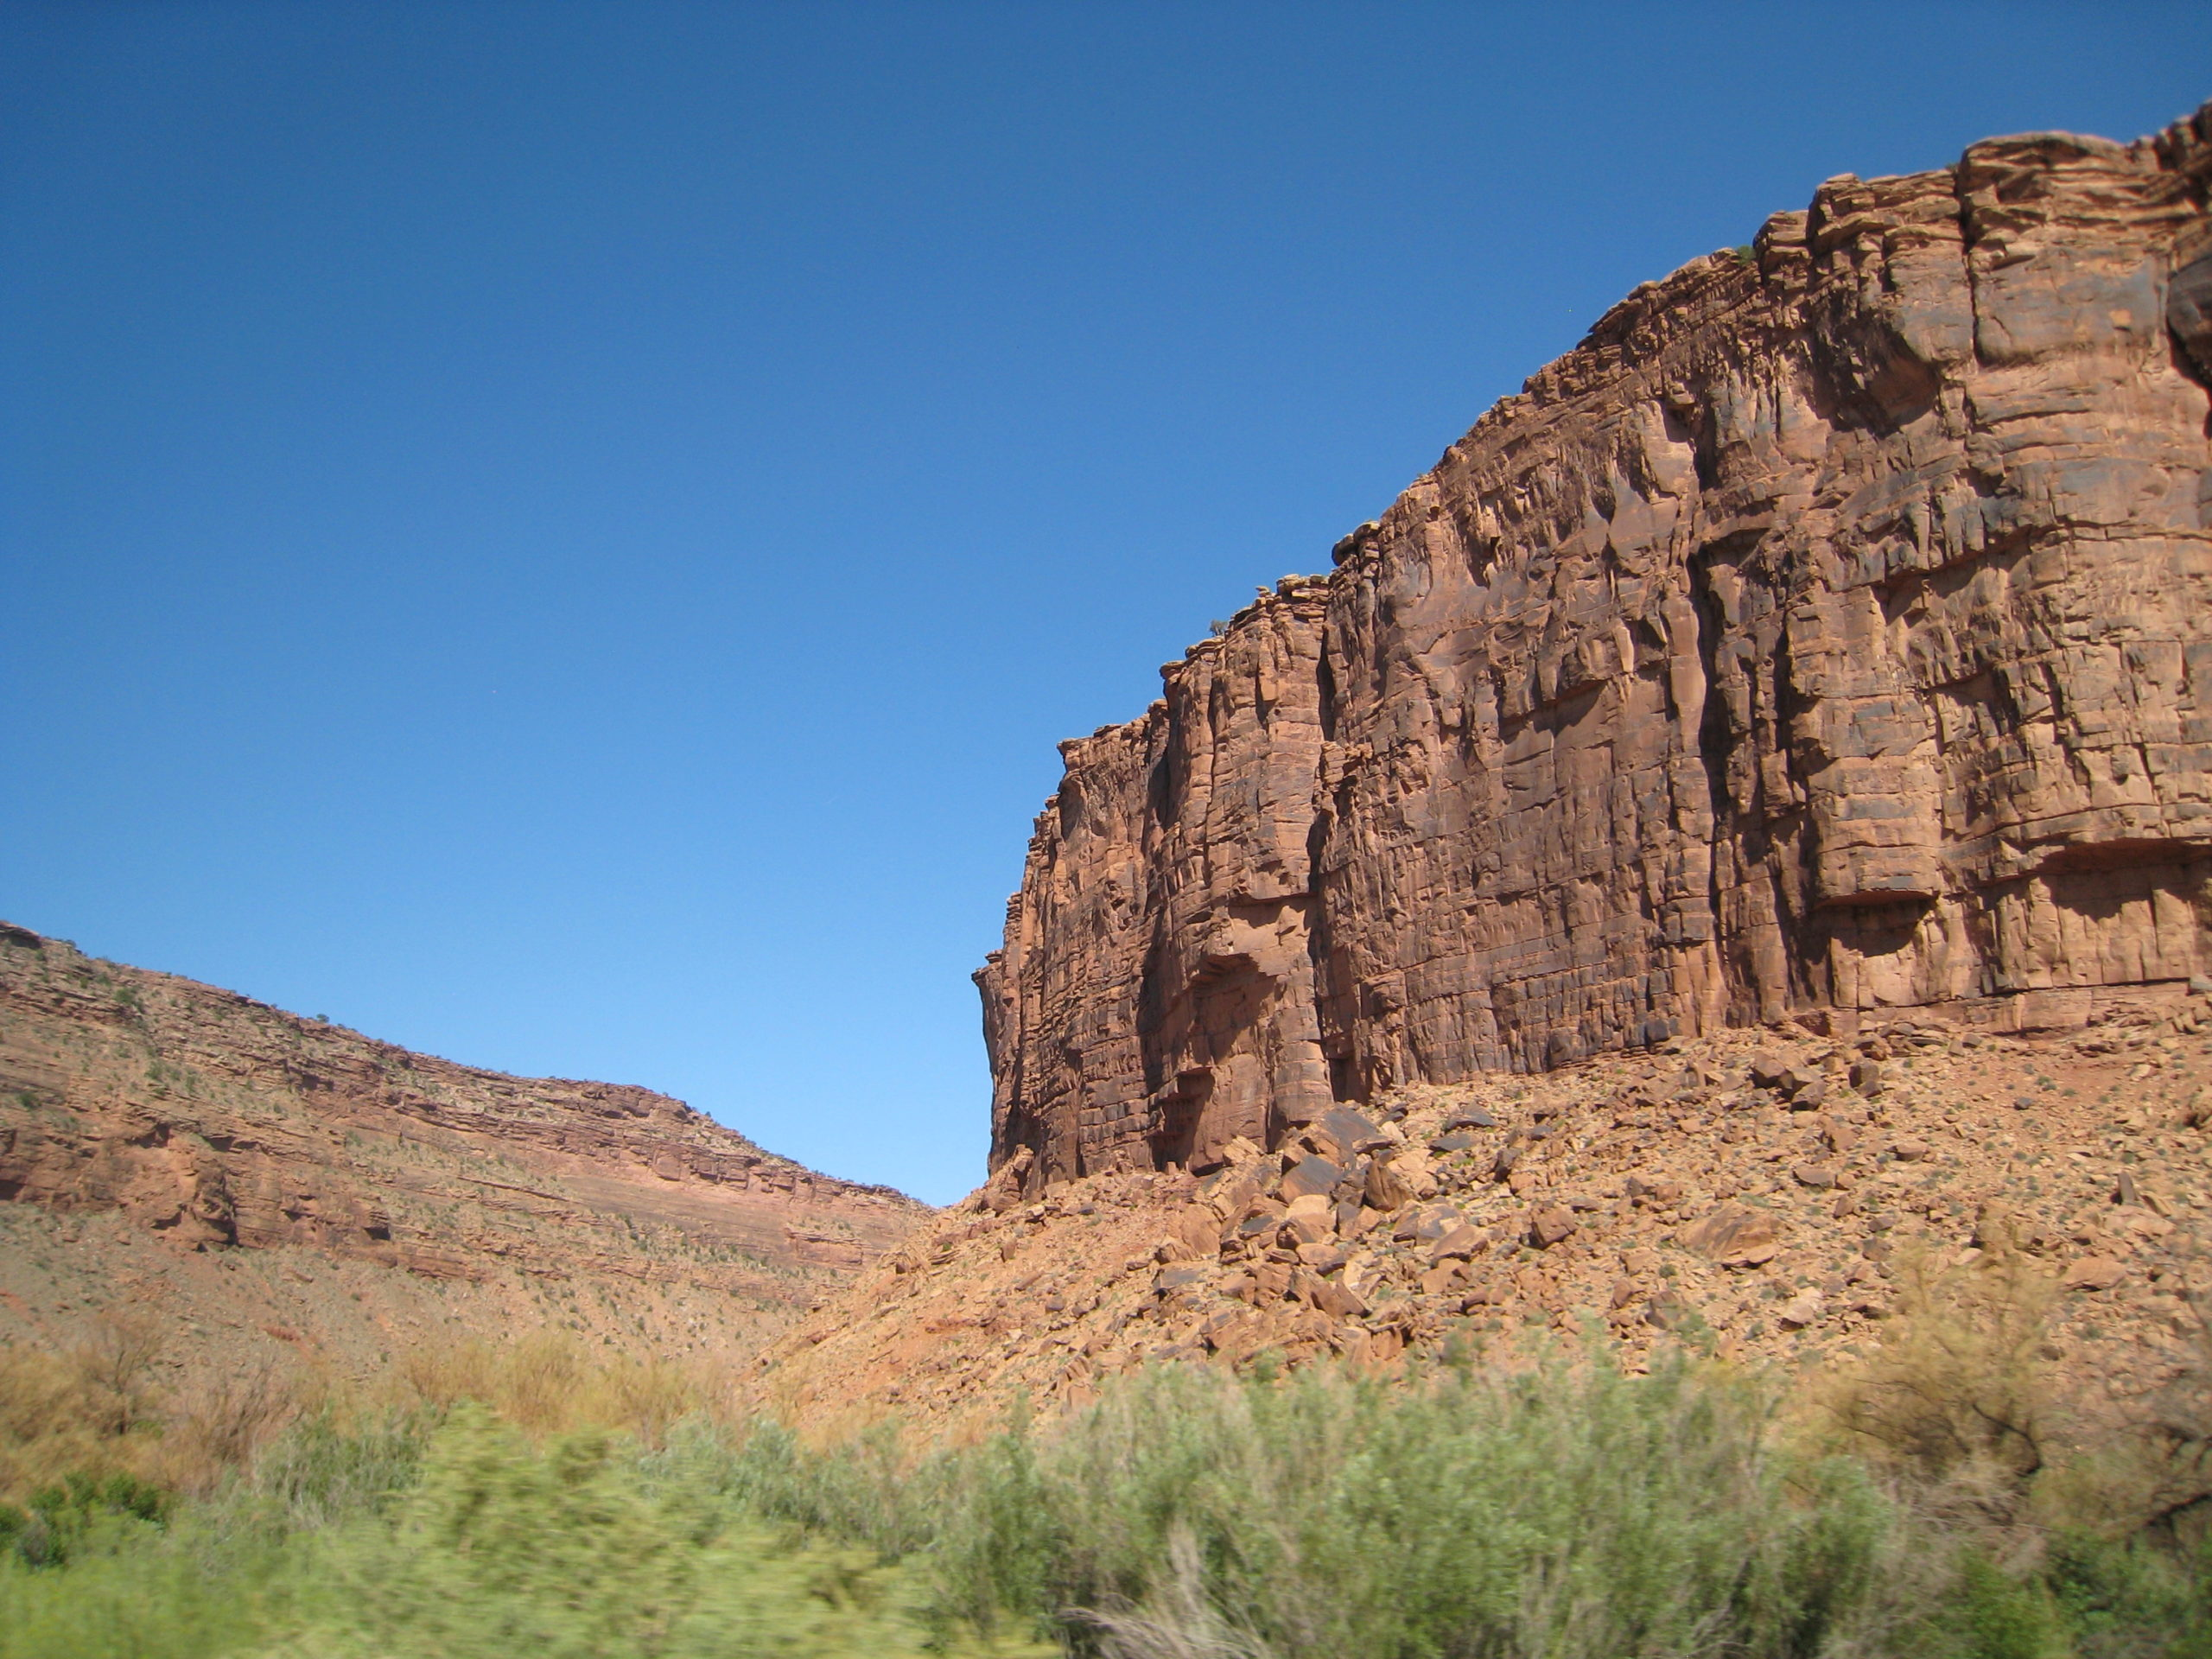 cliff face in the Colorado River gorge